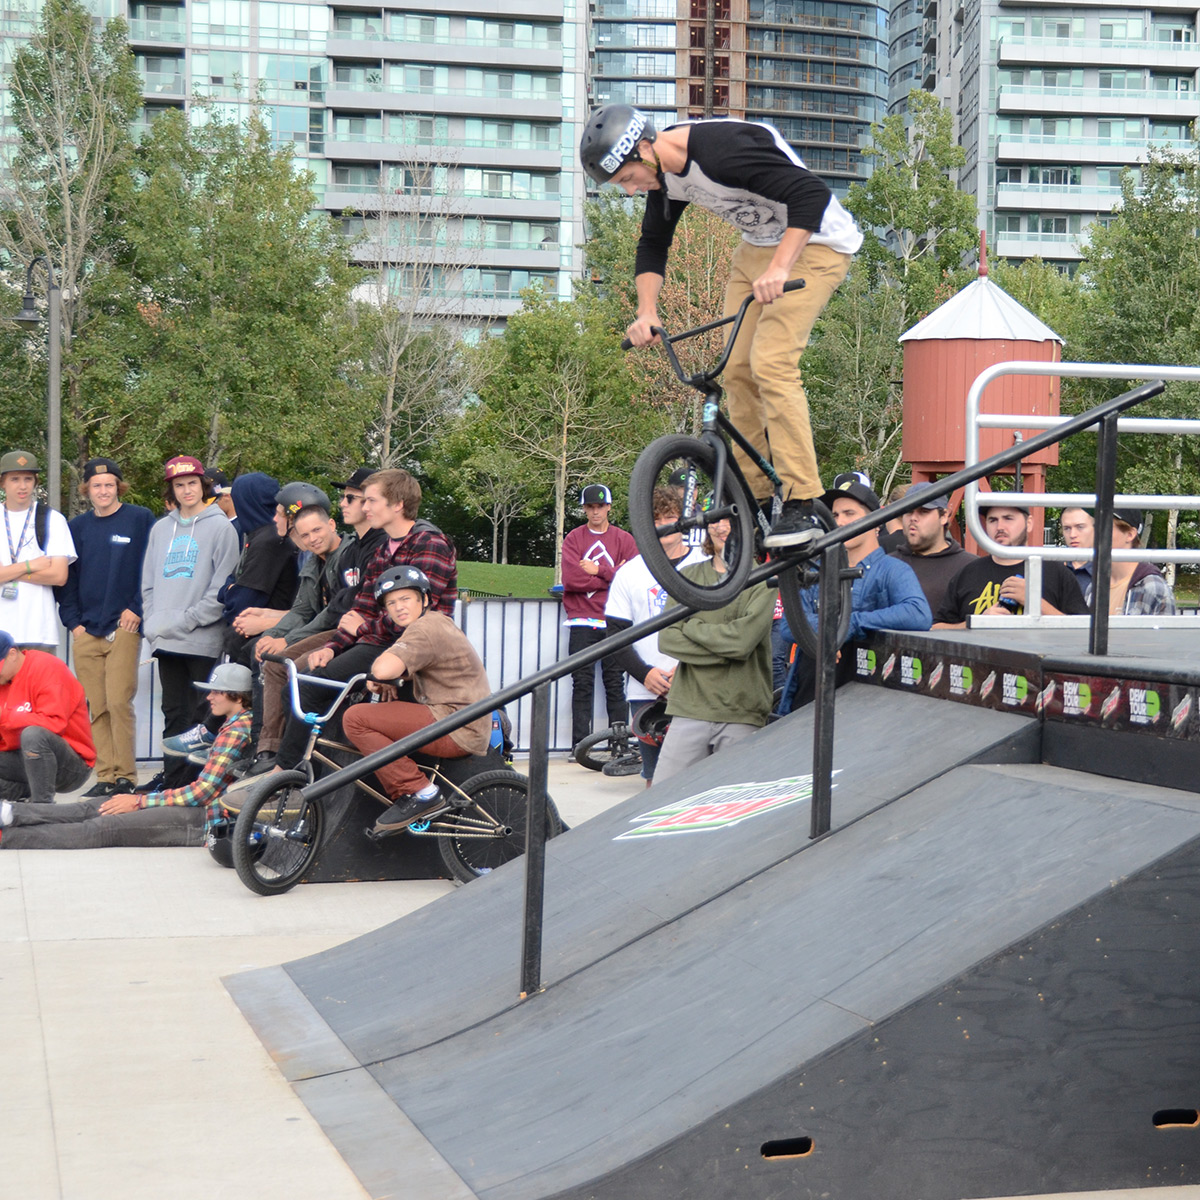 Crank Arm Grind at BMX Dew Tour Am Series in Toronto